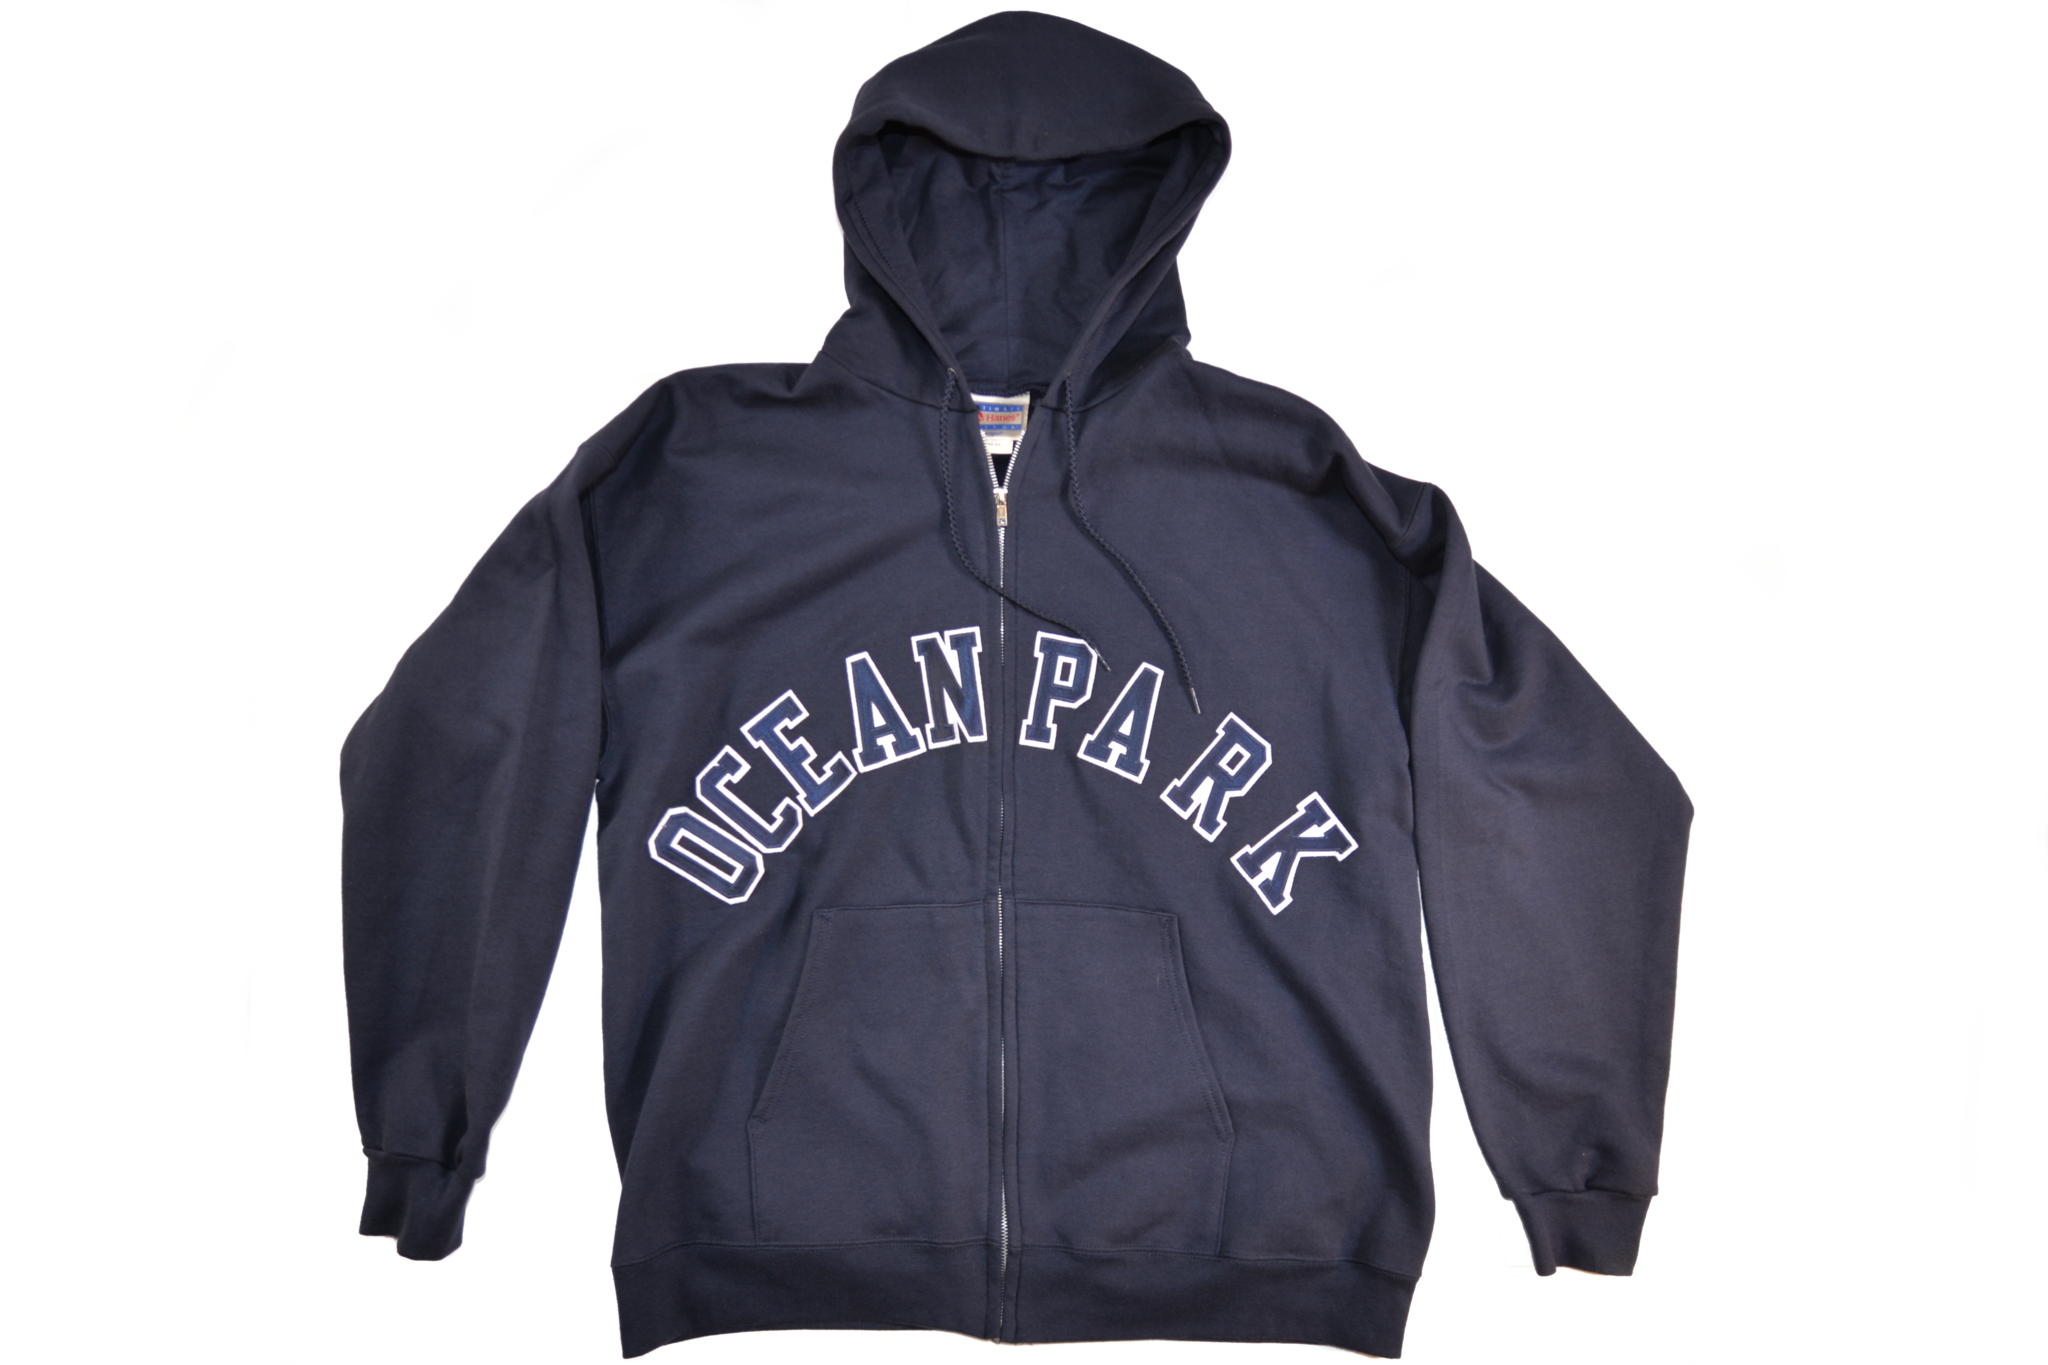 OCEAN PARK COLLEGIATE ZIP-UP HOODIE